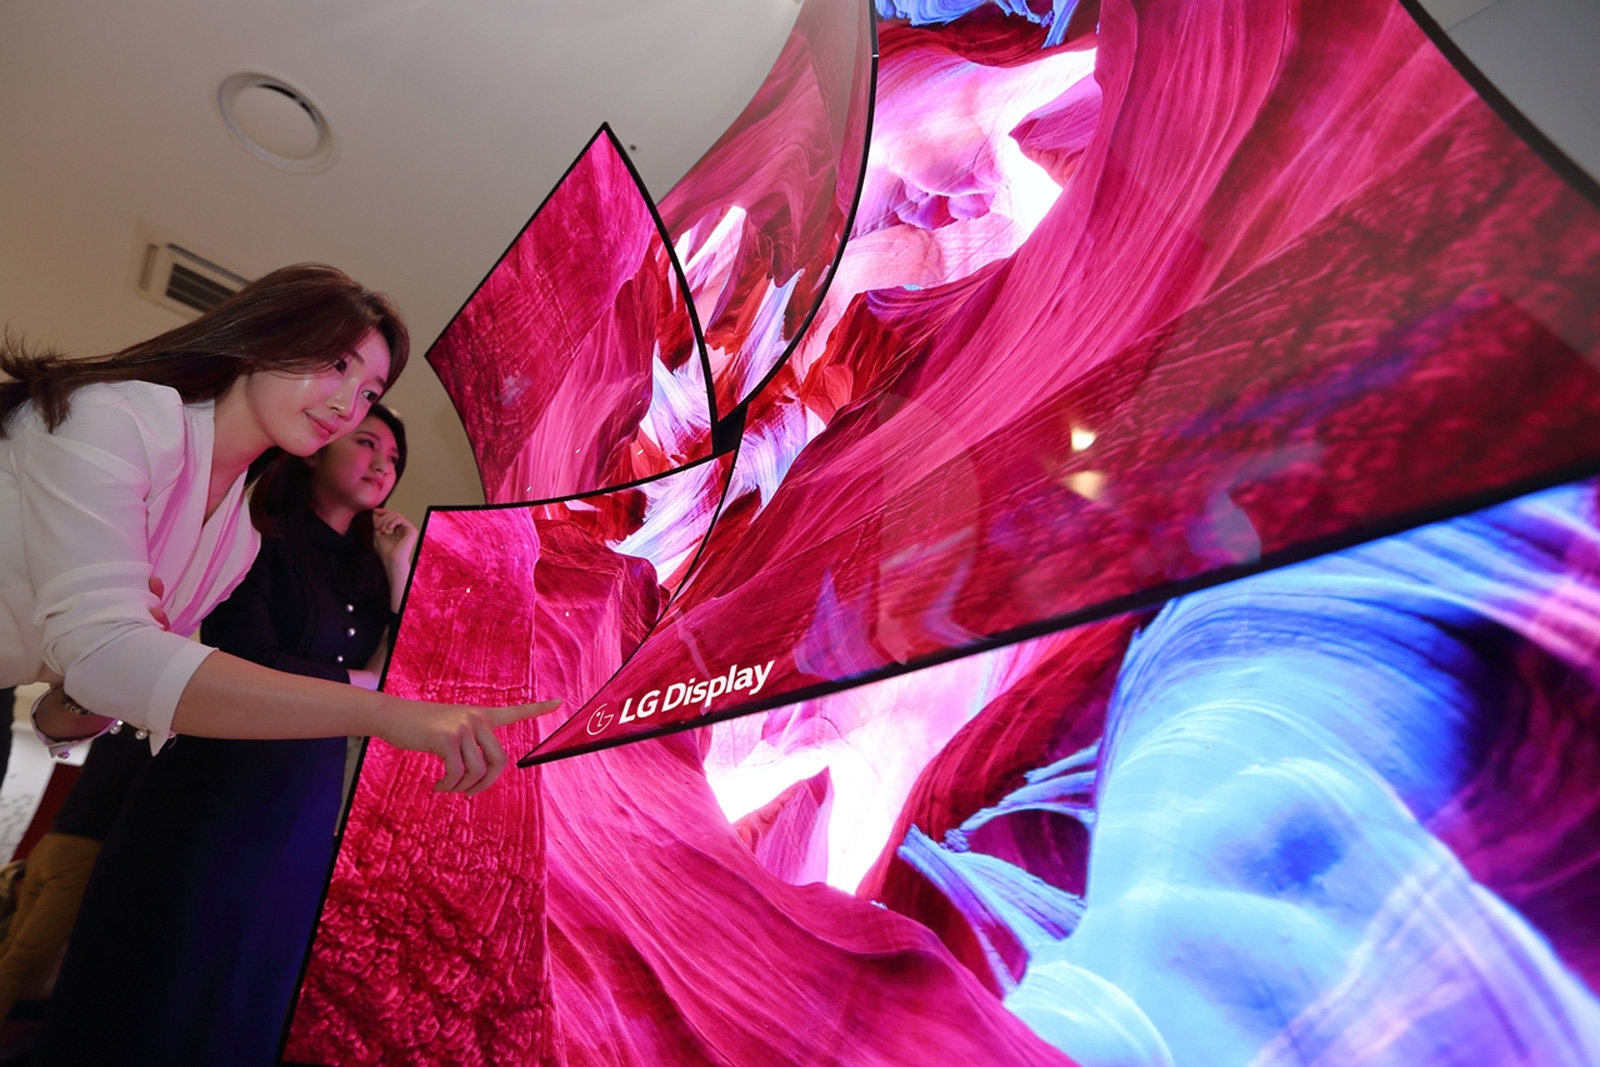 LG Display unveils an 88-inch 8K OLED screen with built-in sound | DeviceDaily.com